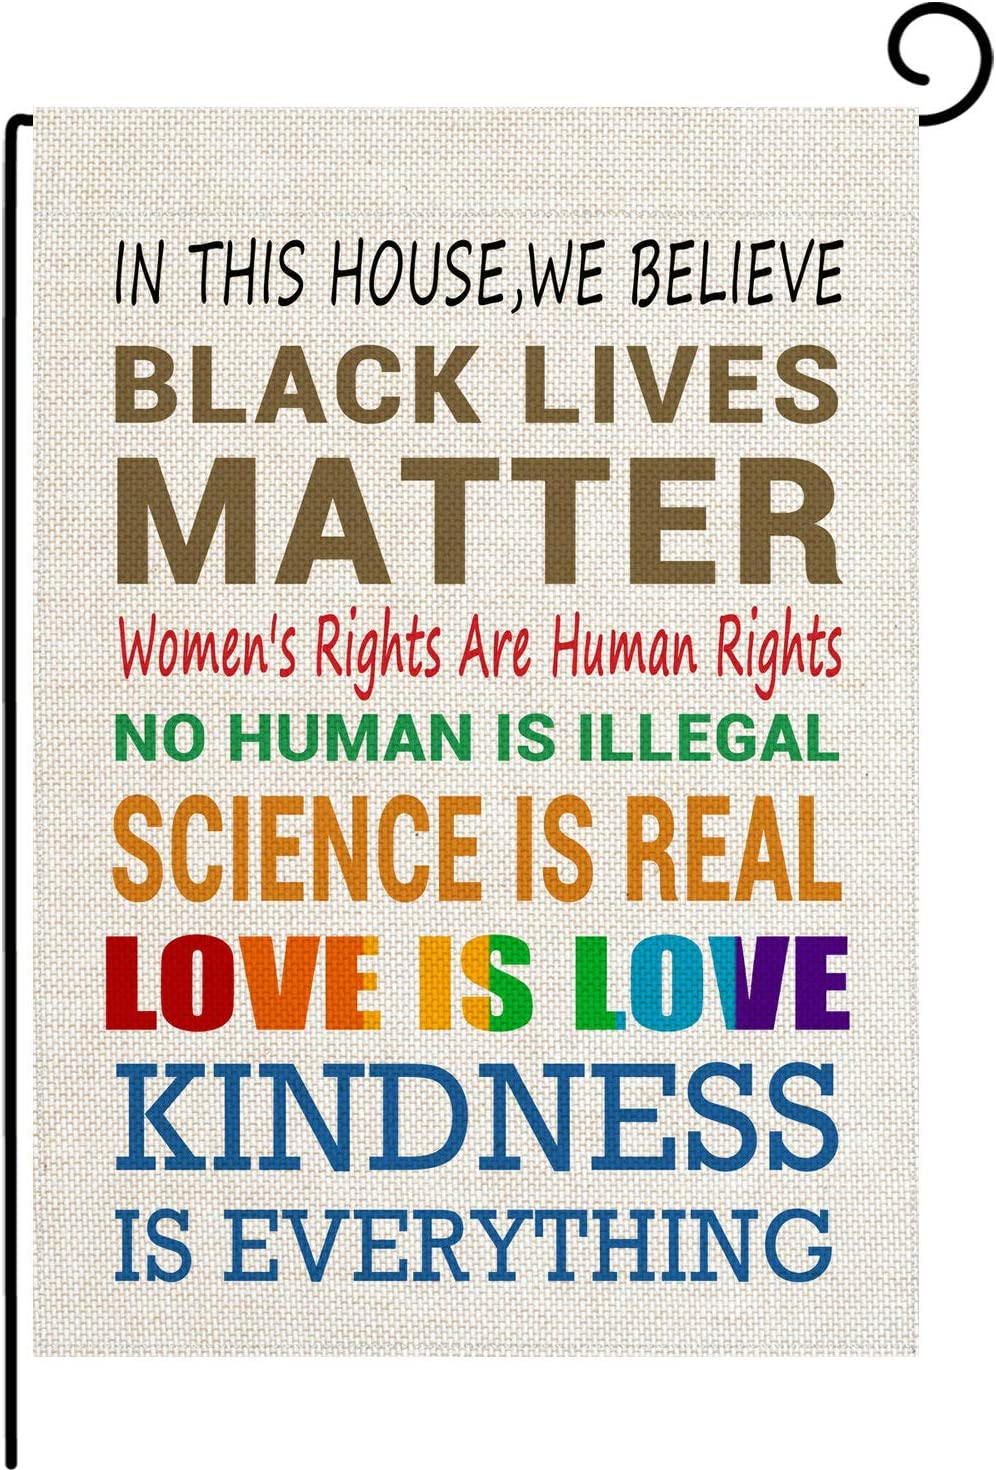 pingpi in This House We Believe Black Lives Matter Garden Double Sided Flag Home Yard Lawn Patio Outdoor Burlap Banner Decoration 12.5 x 18 Inch